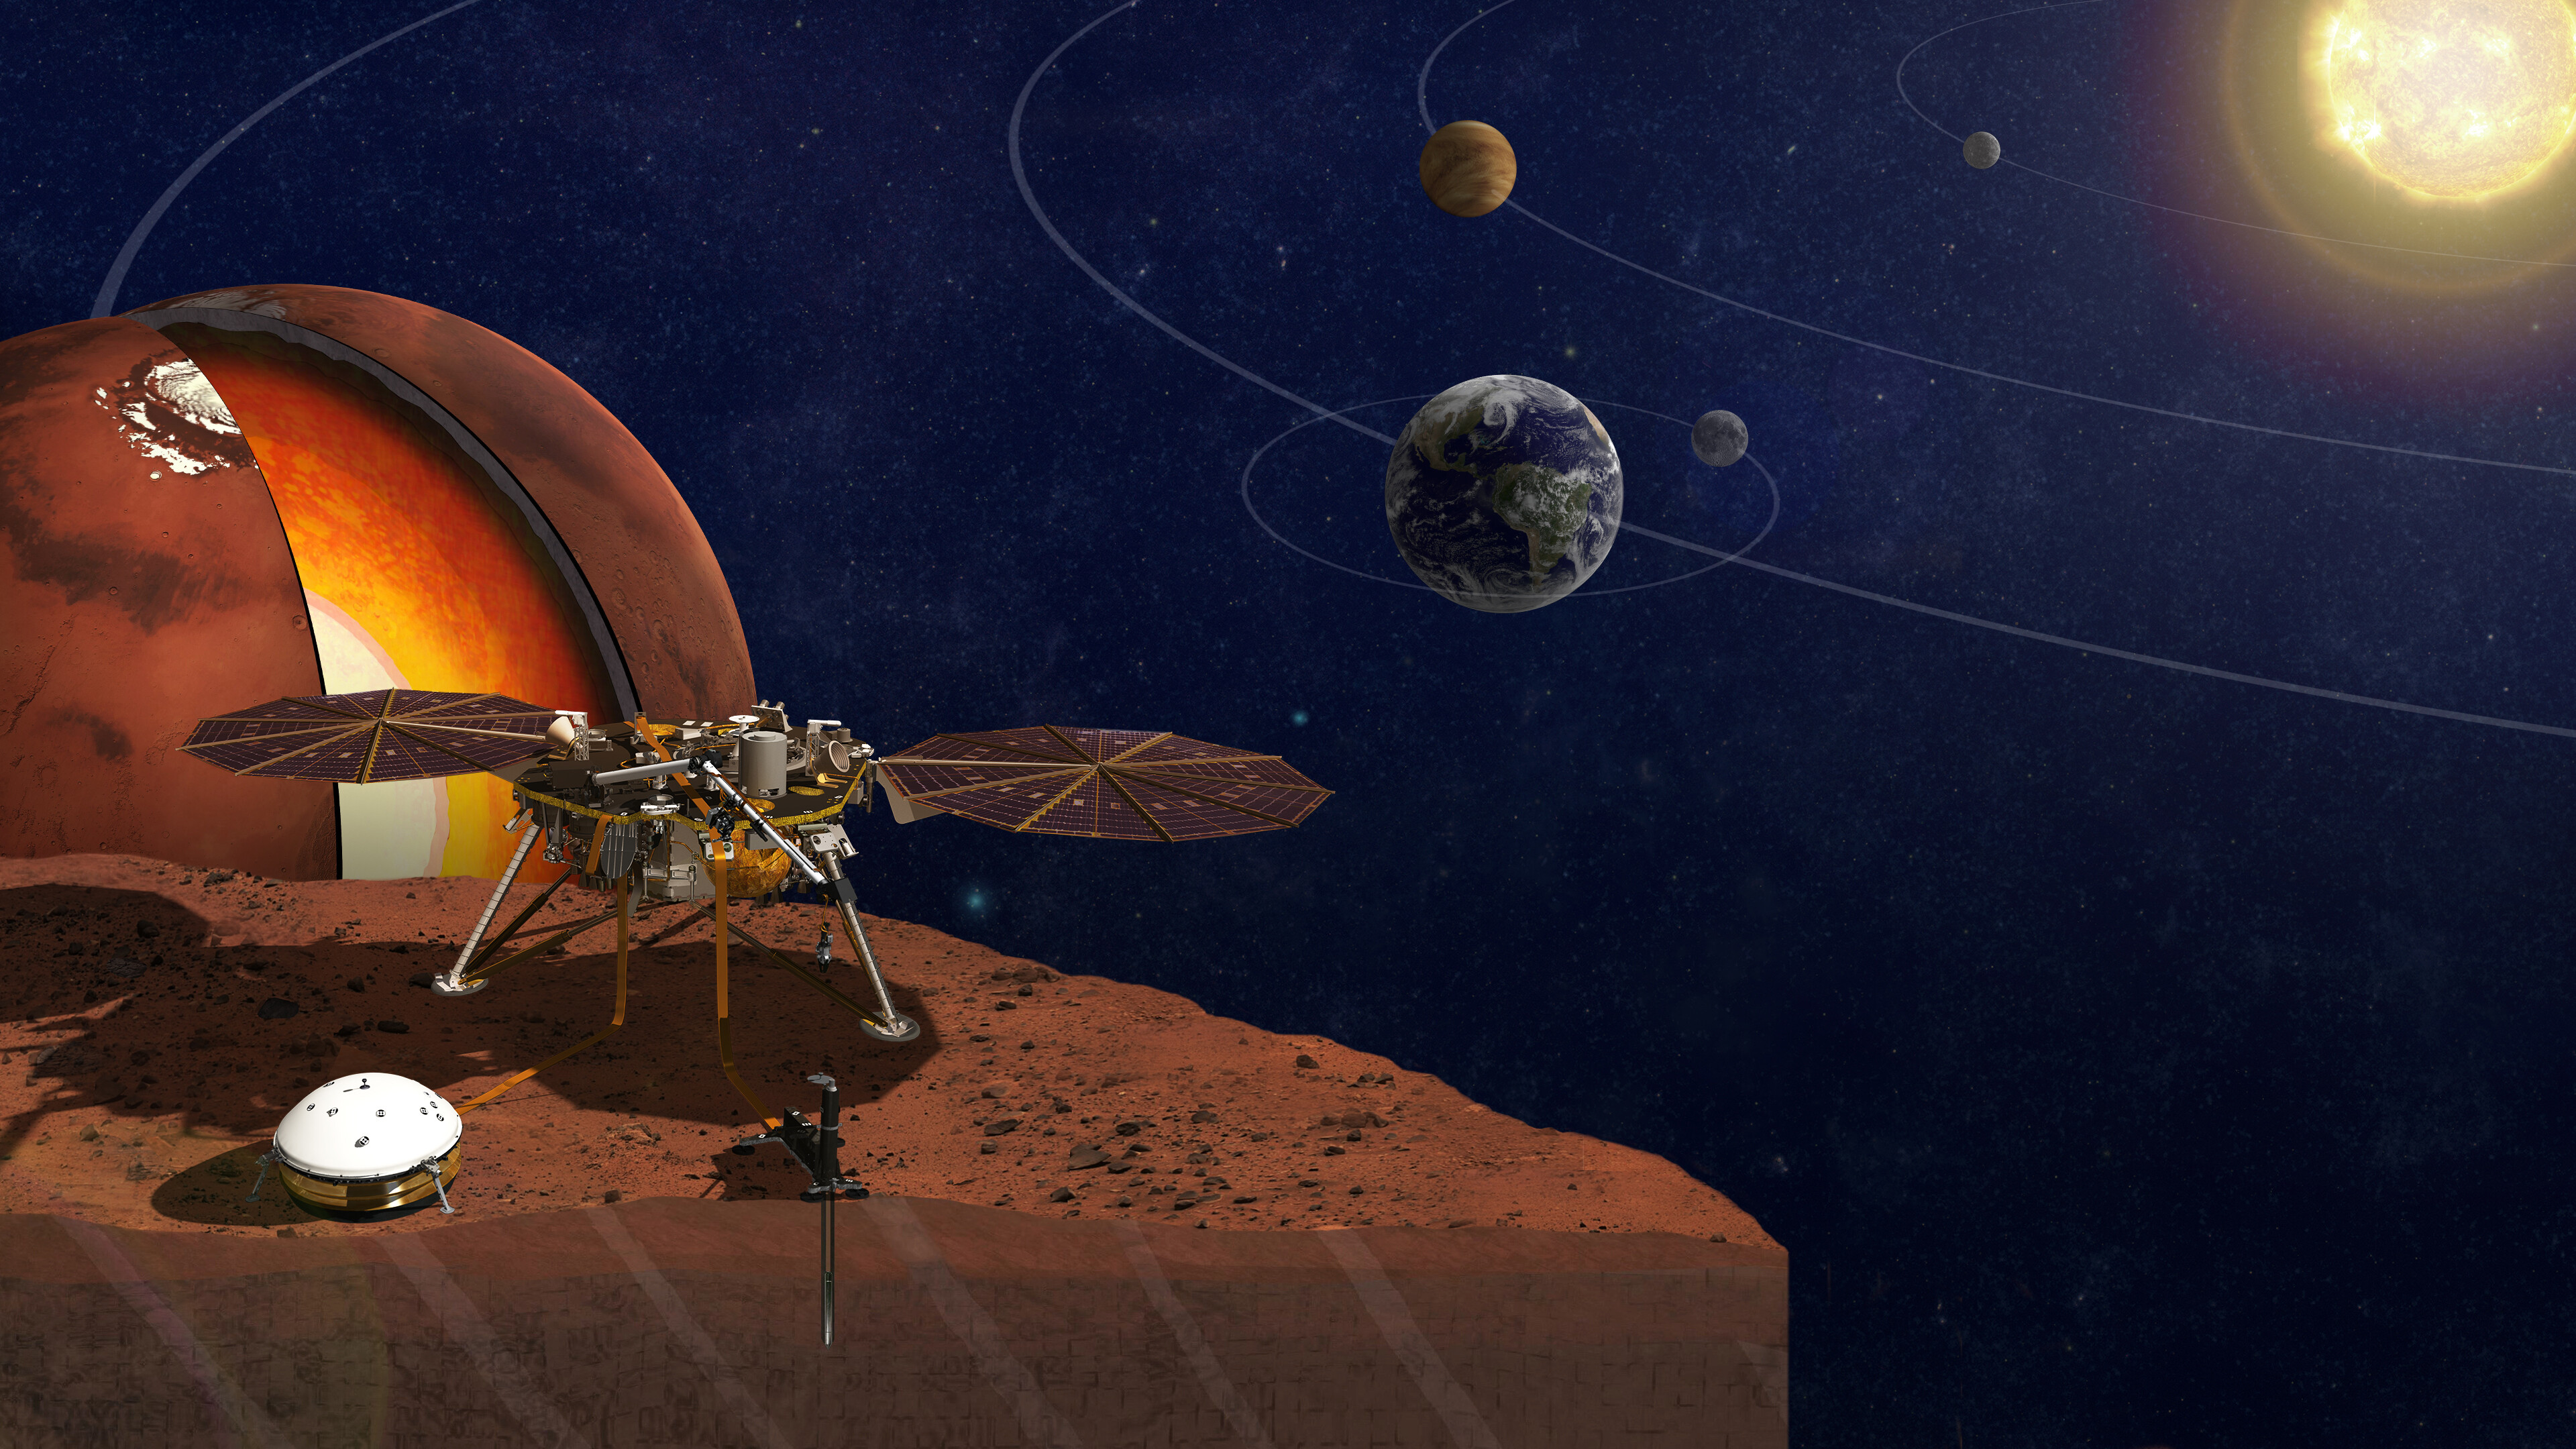 Marsquakes reveal the mysterious interior of the red planet